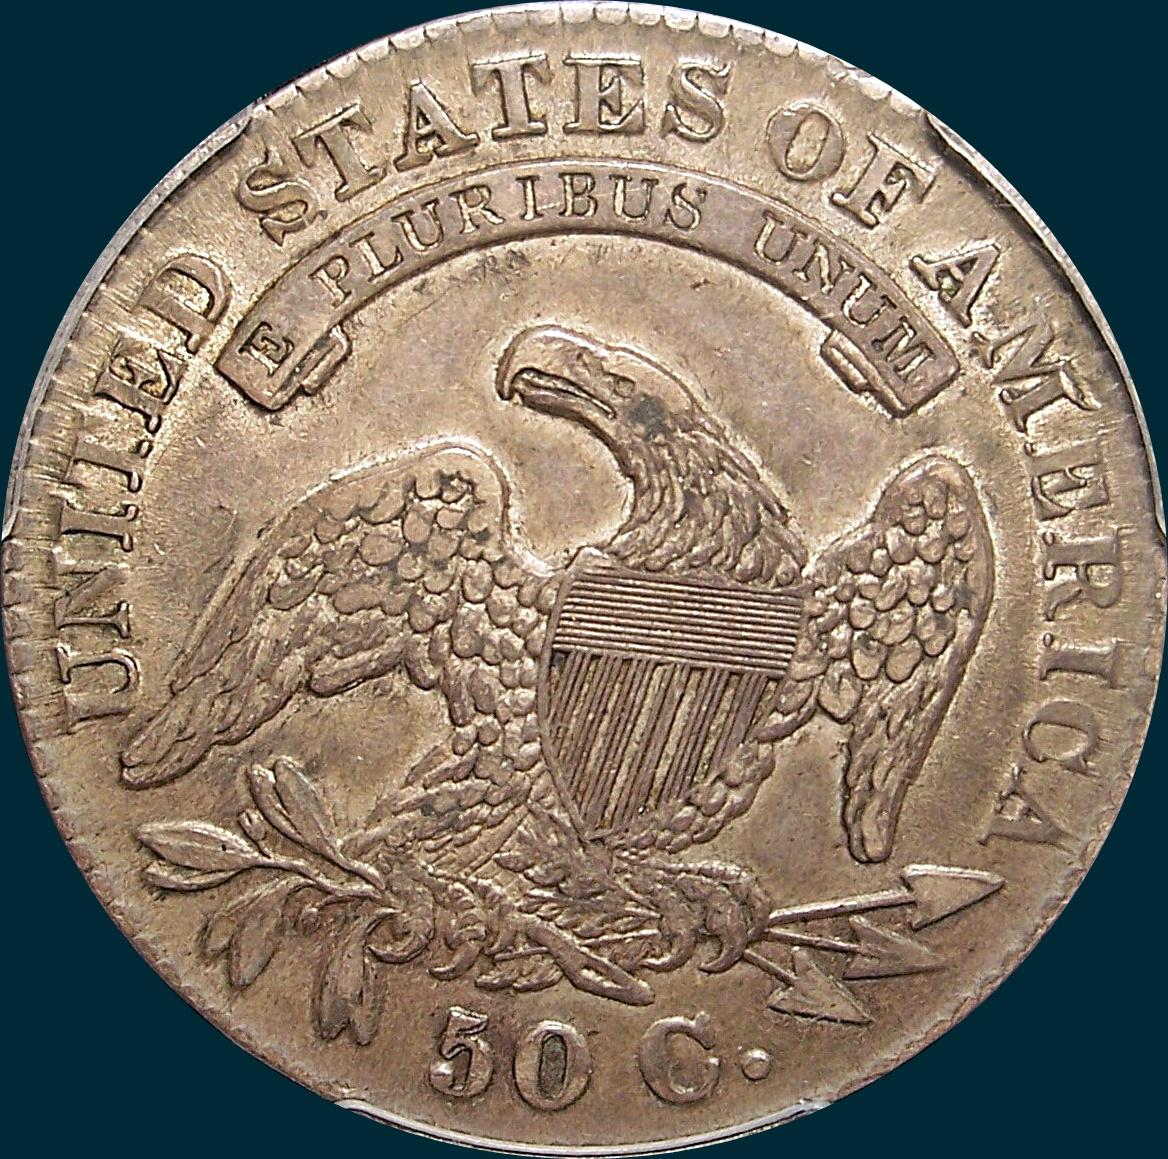 1830 O-122, large 0, capped bust half dollar